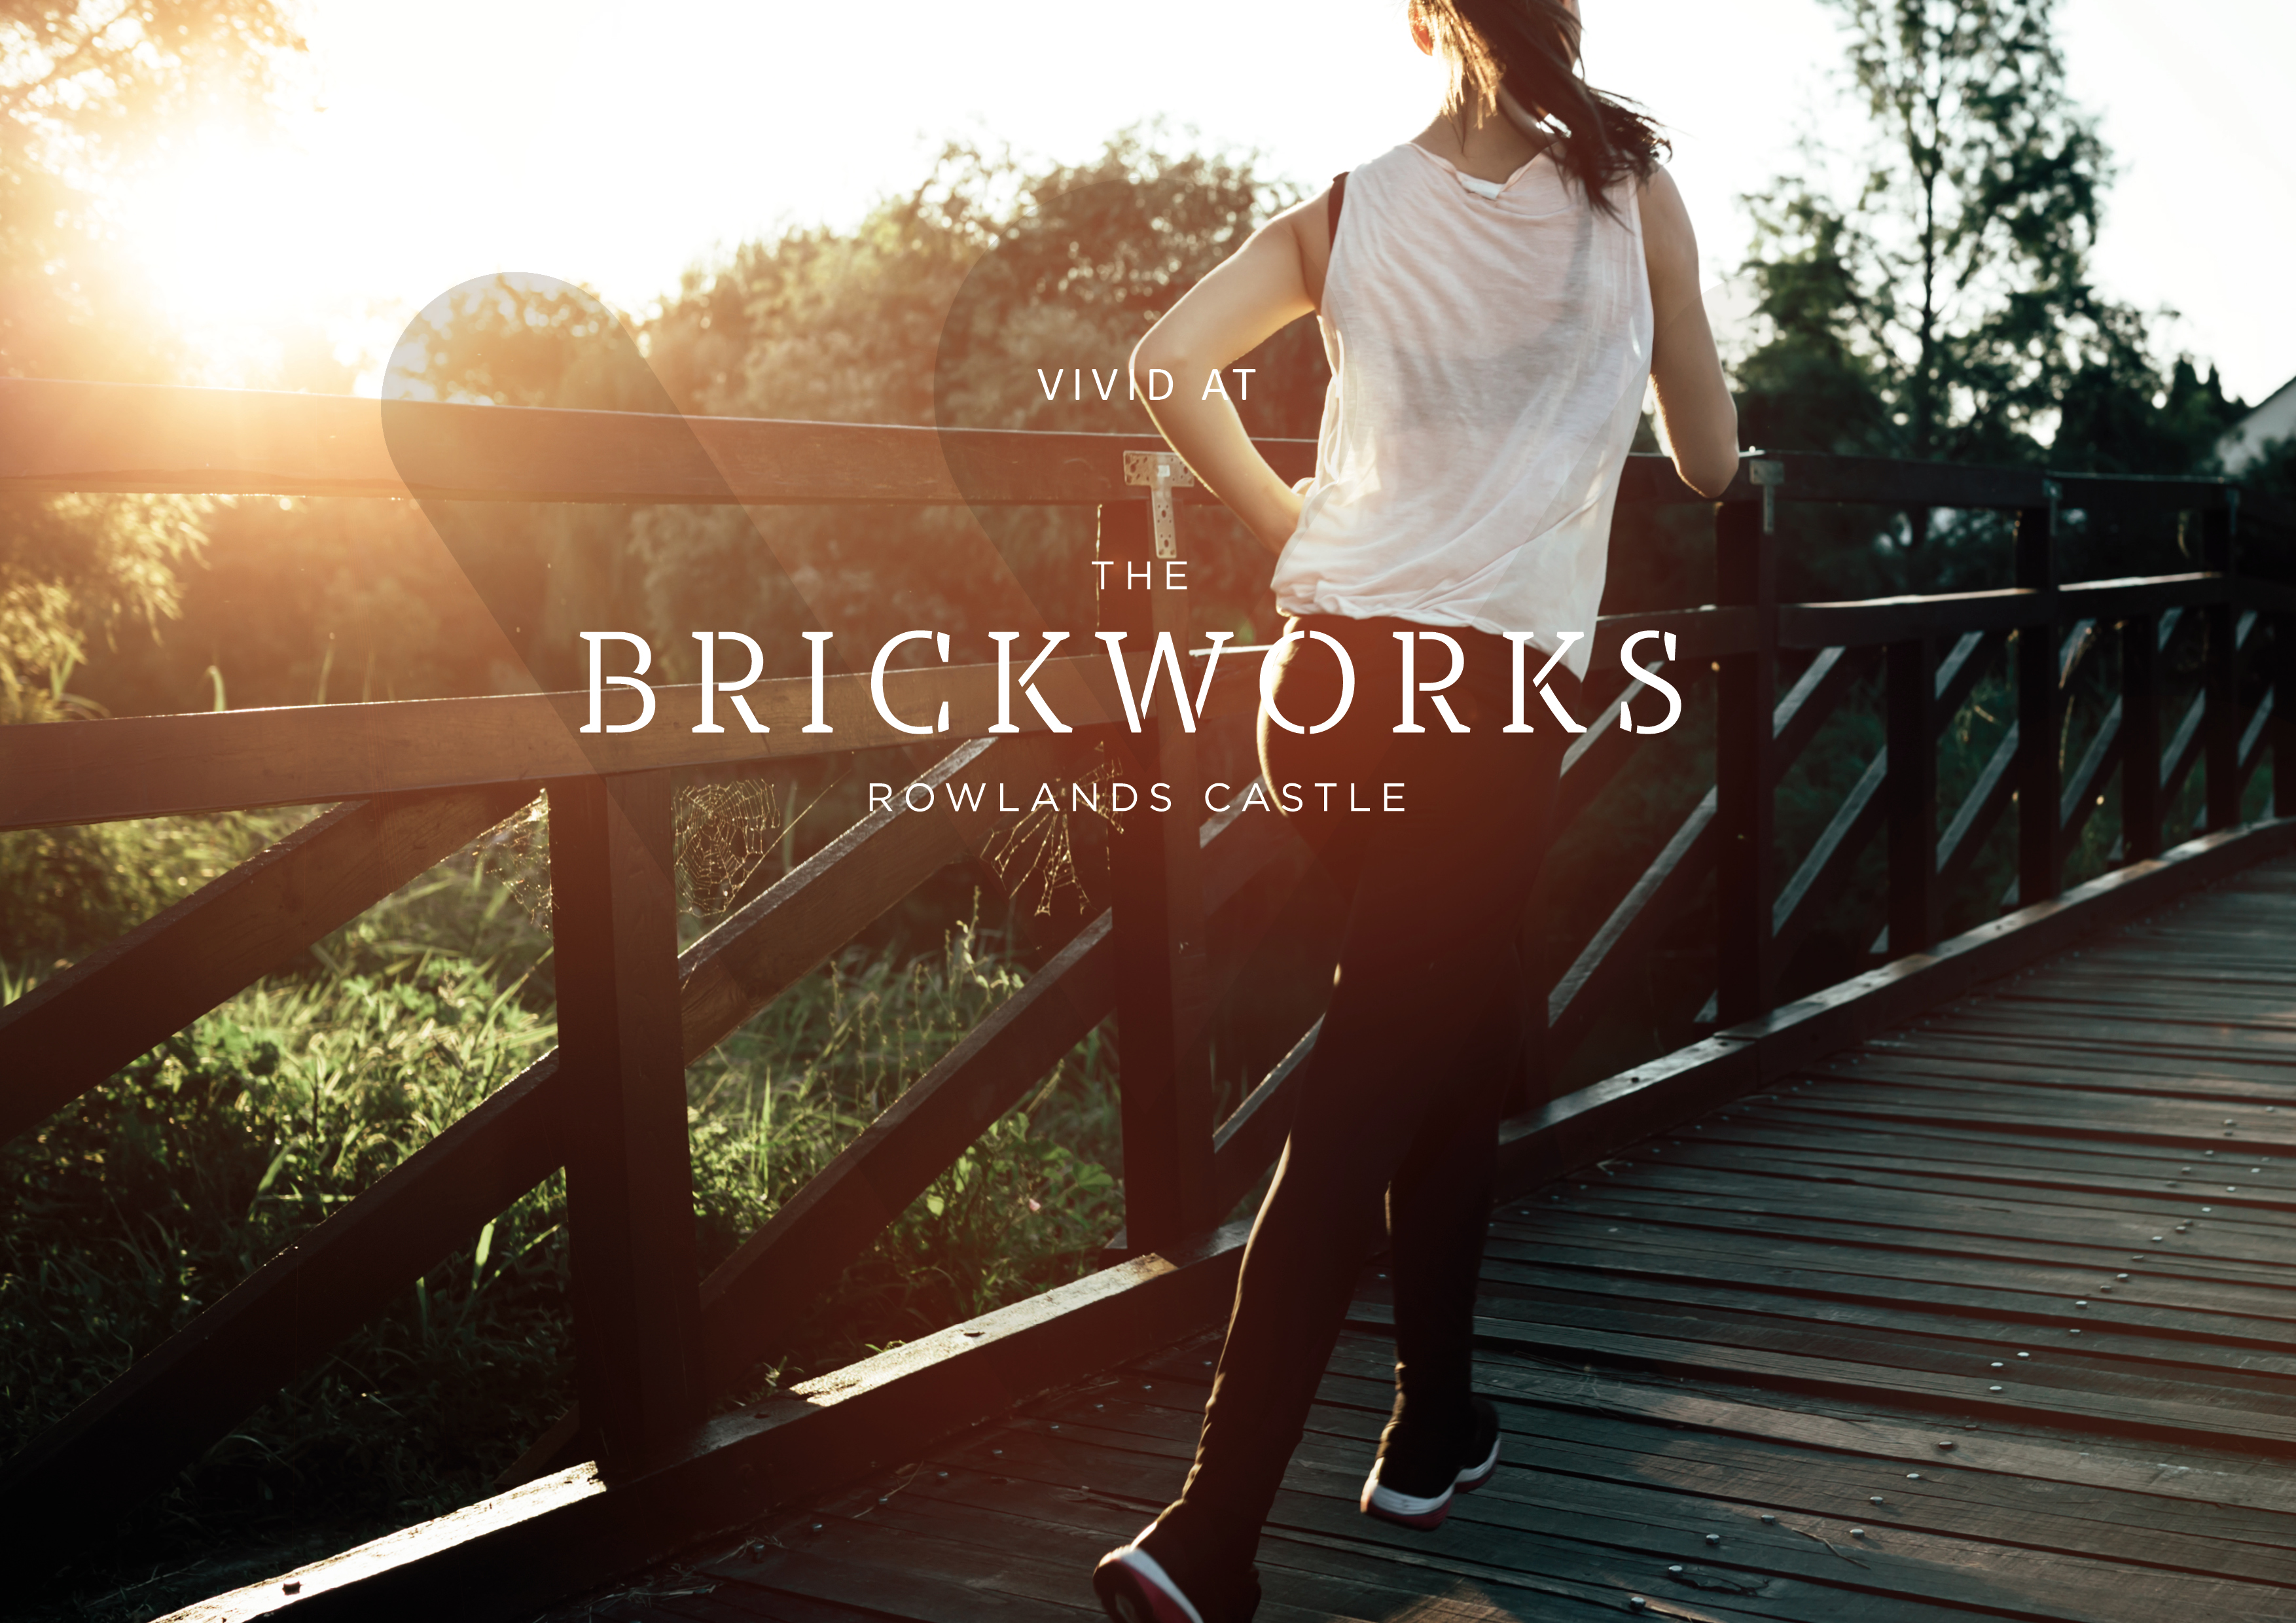 The Brickworks